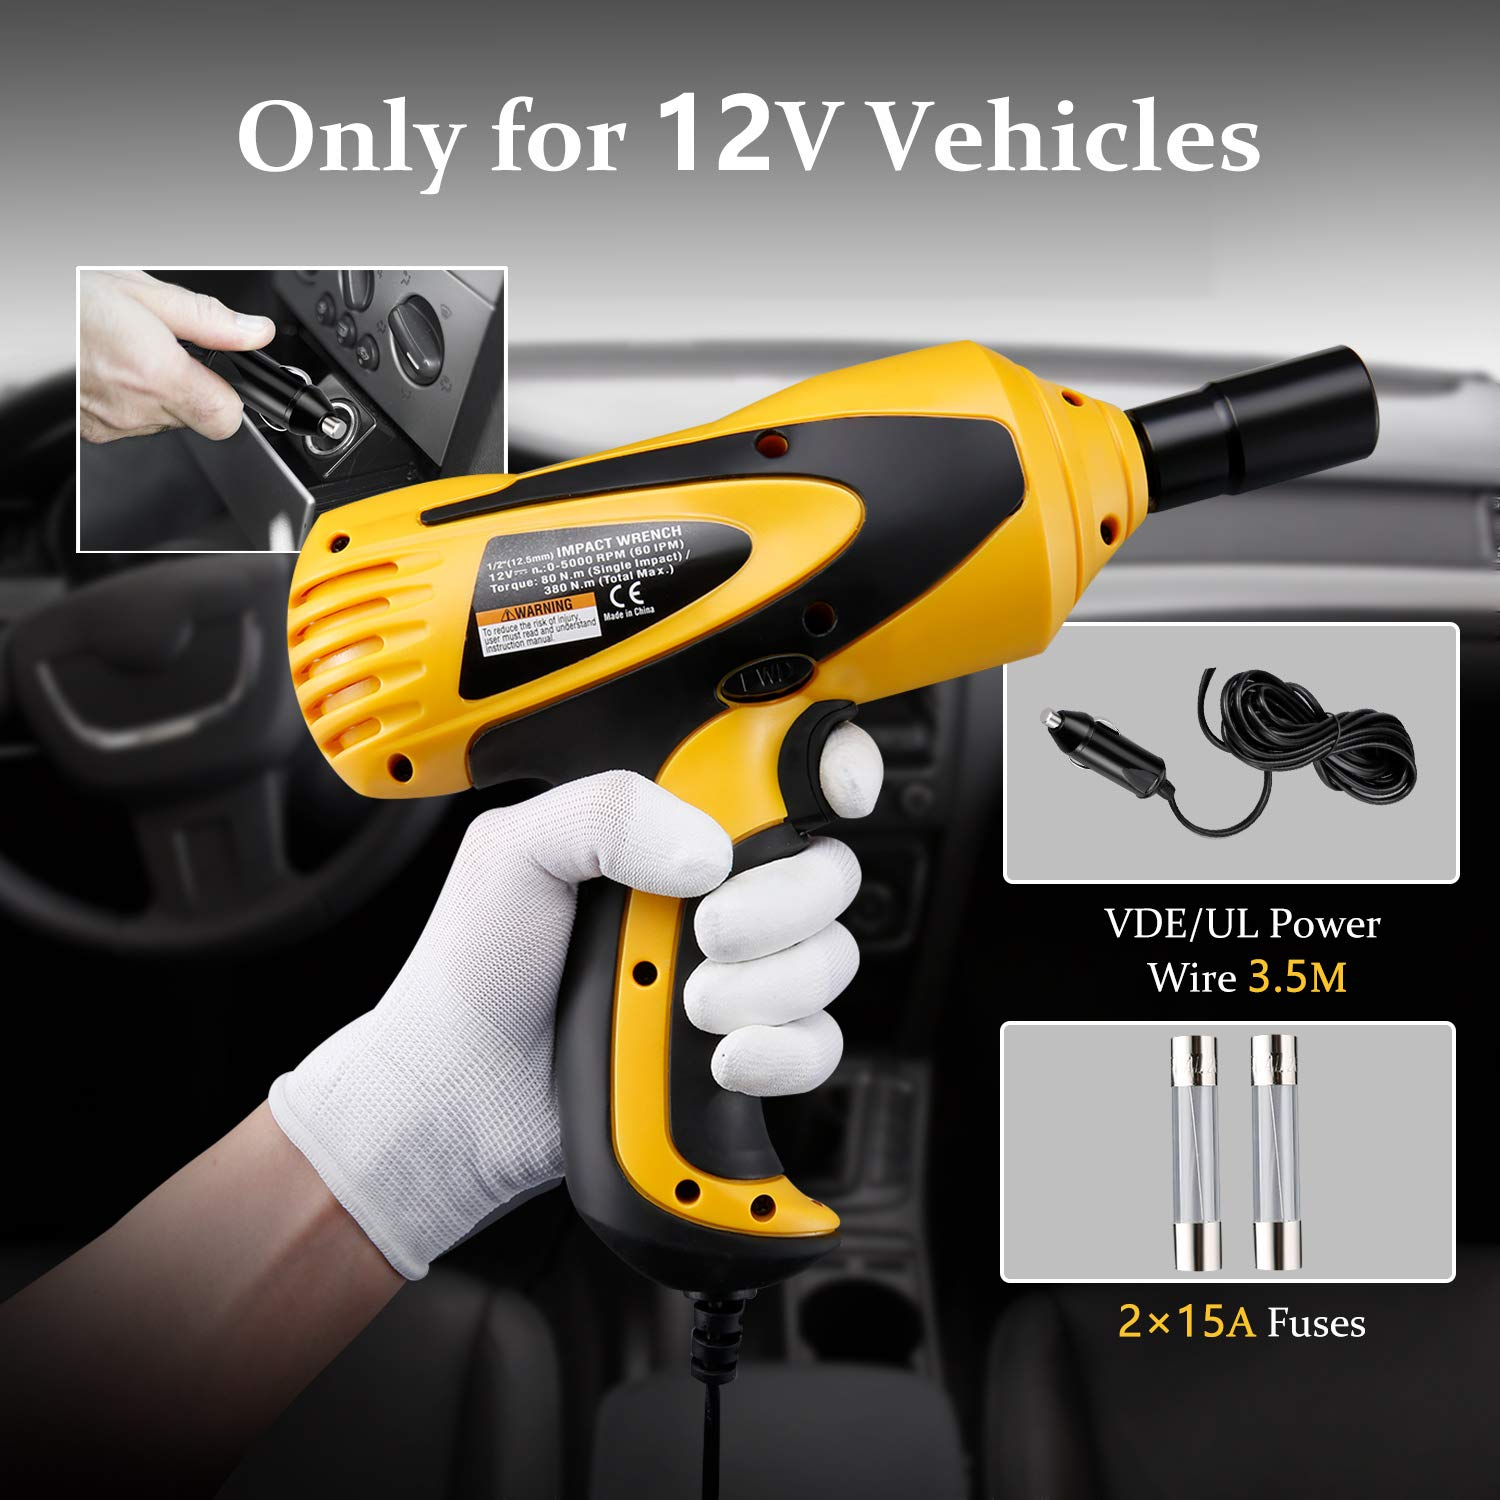 VETOMIL 12V Electric Impact Wrench Driver 5000 RPM 380N.m Torque with 1//2 inch Square Drive Sockets and Carry Case for Car Tire Repair Tools